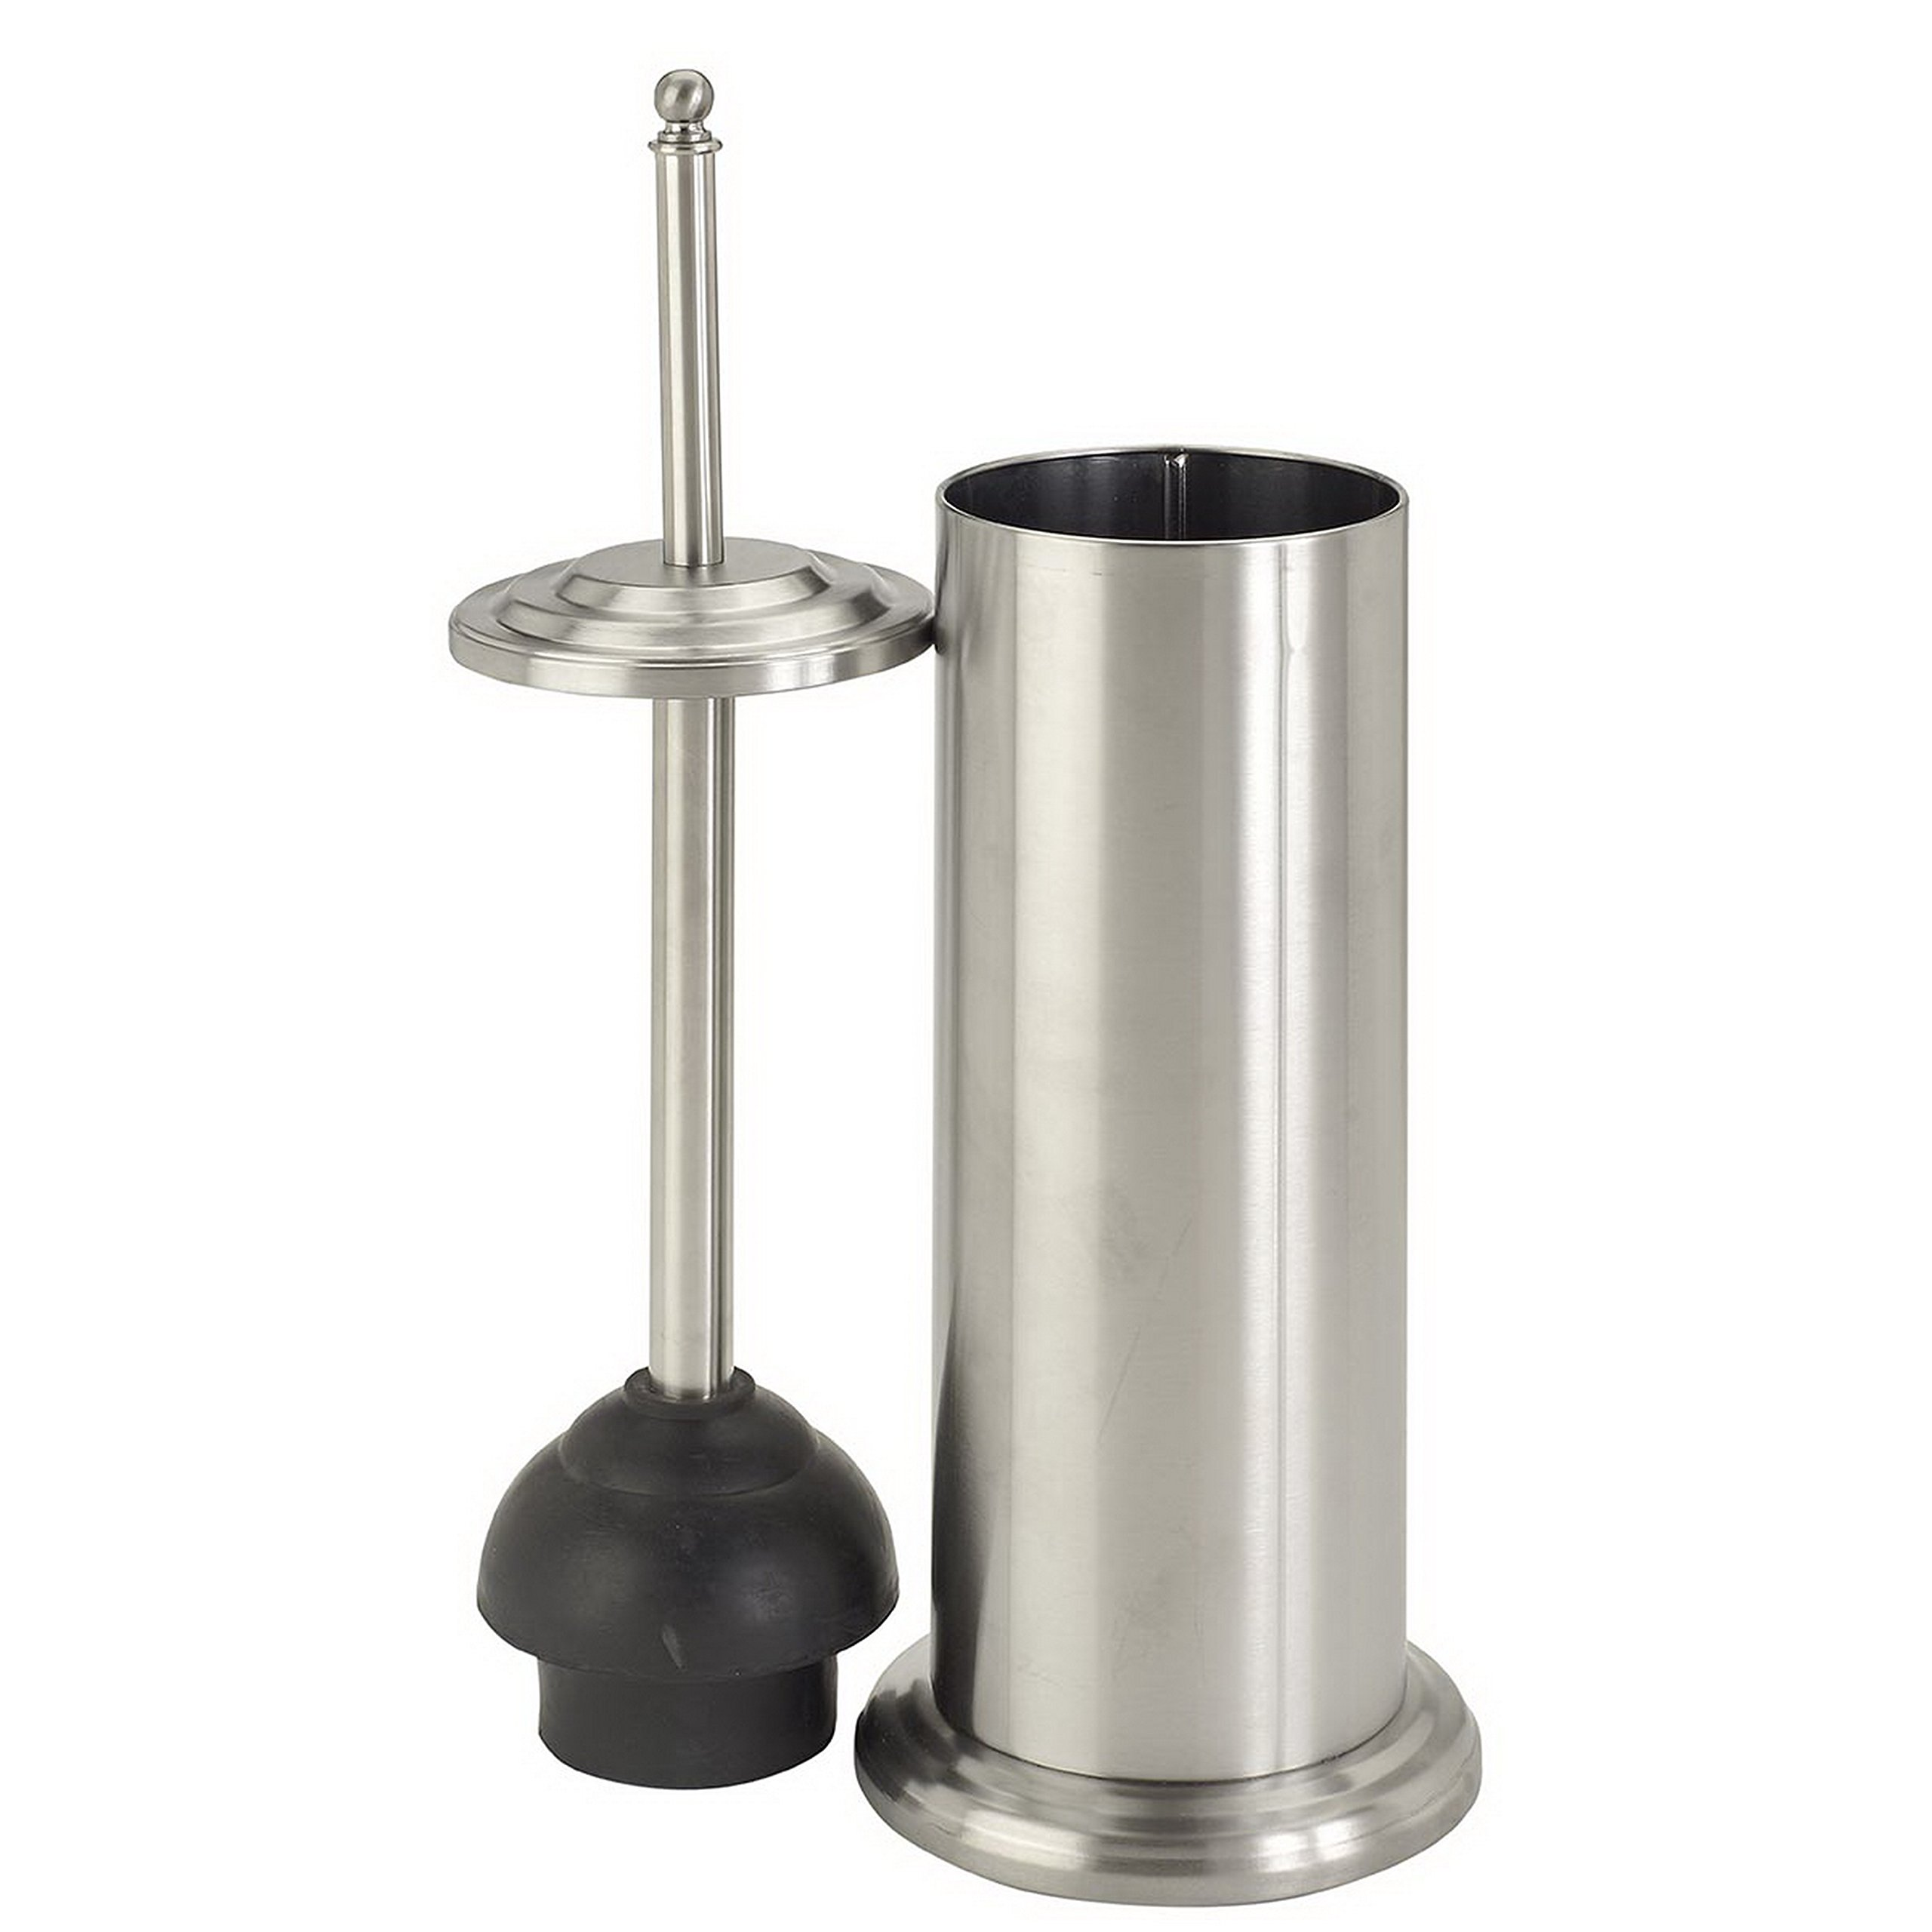 Bath Bliss Stainless Steel Toilet Plunger